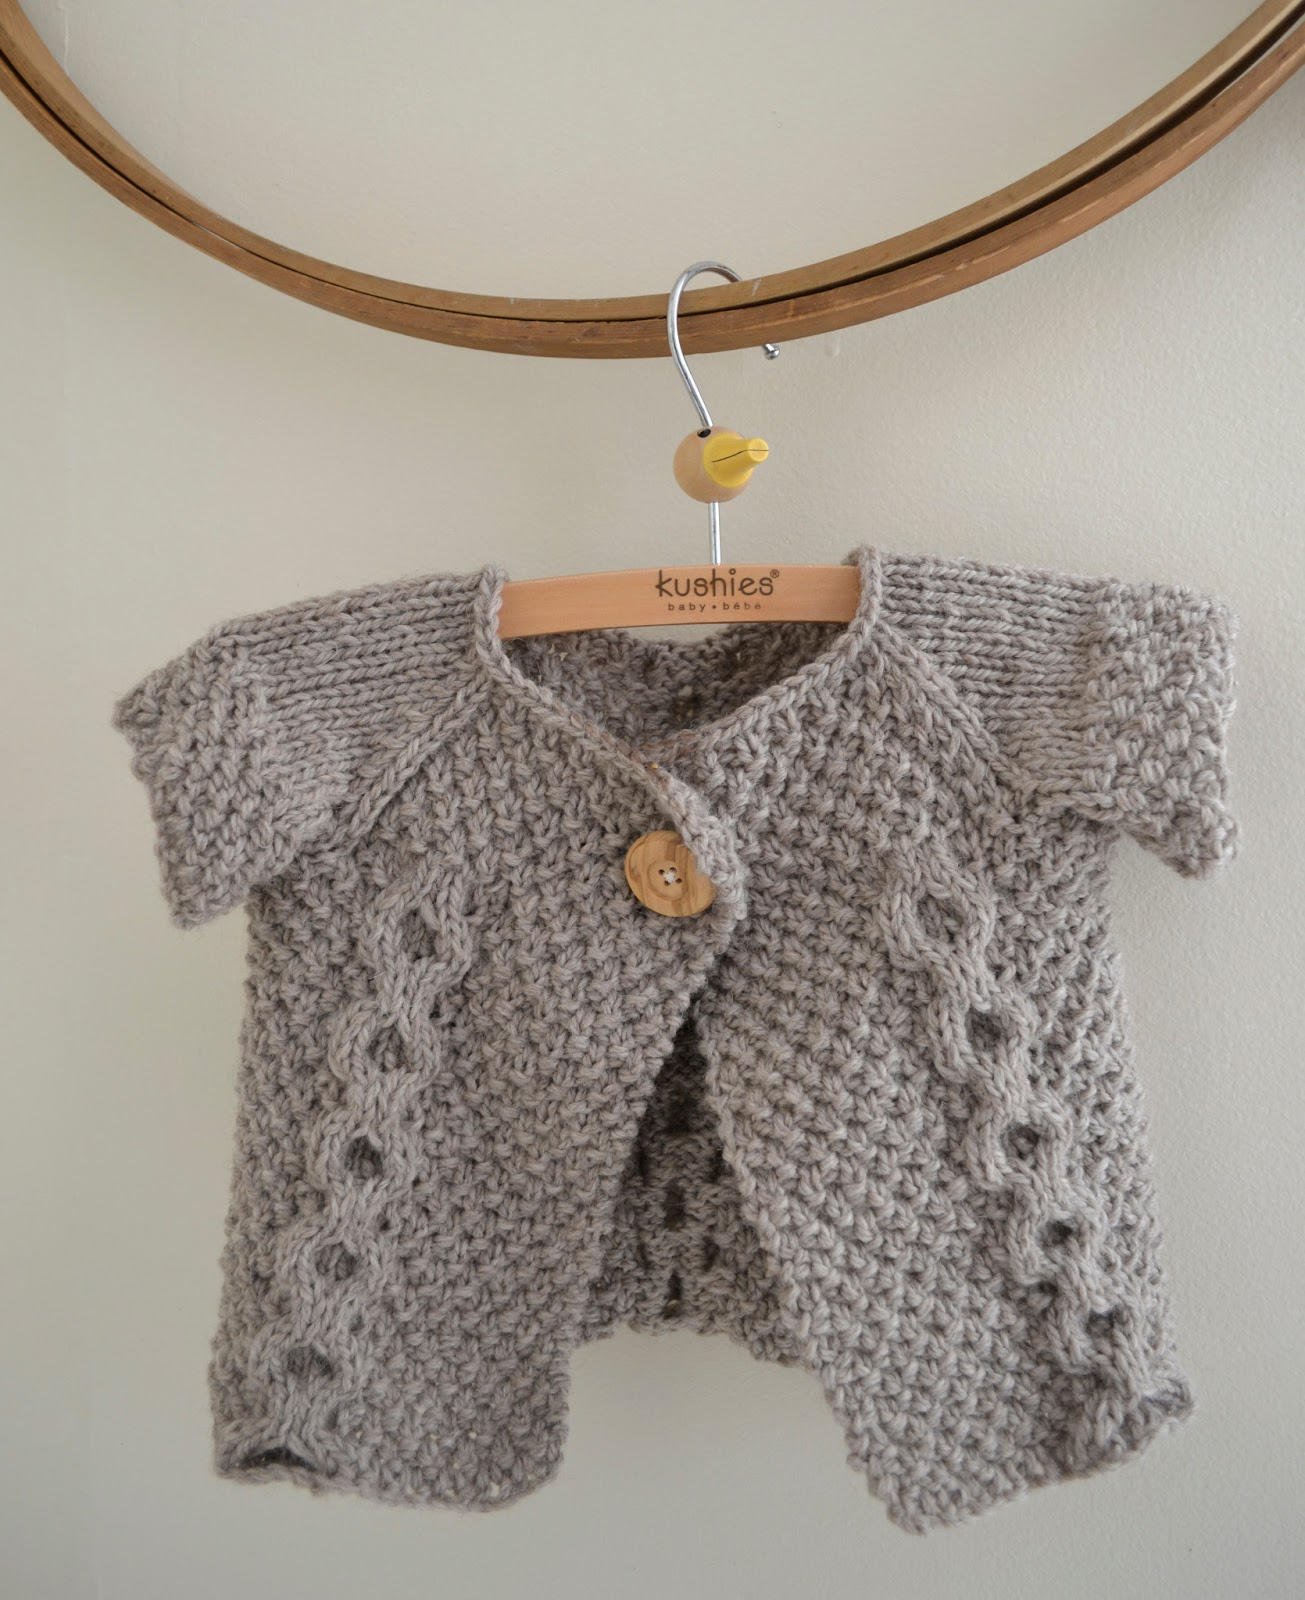 Knitting Sweater Designs For Baby : Cardigan knitting with buttons